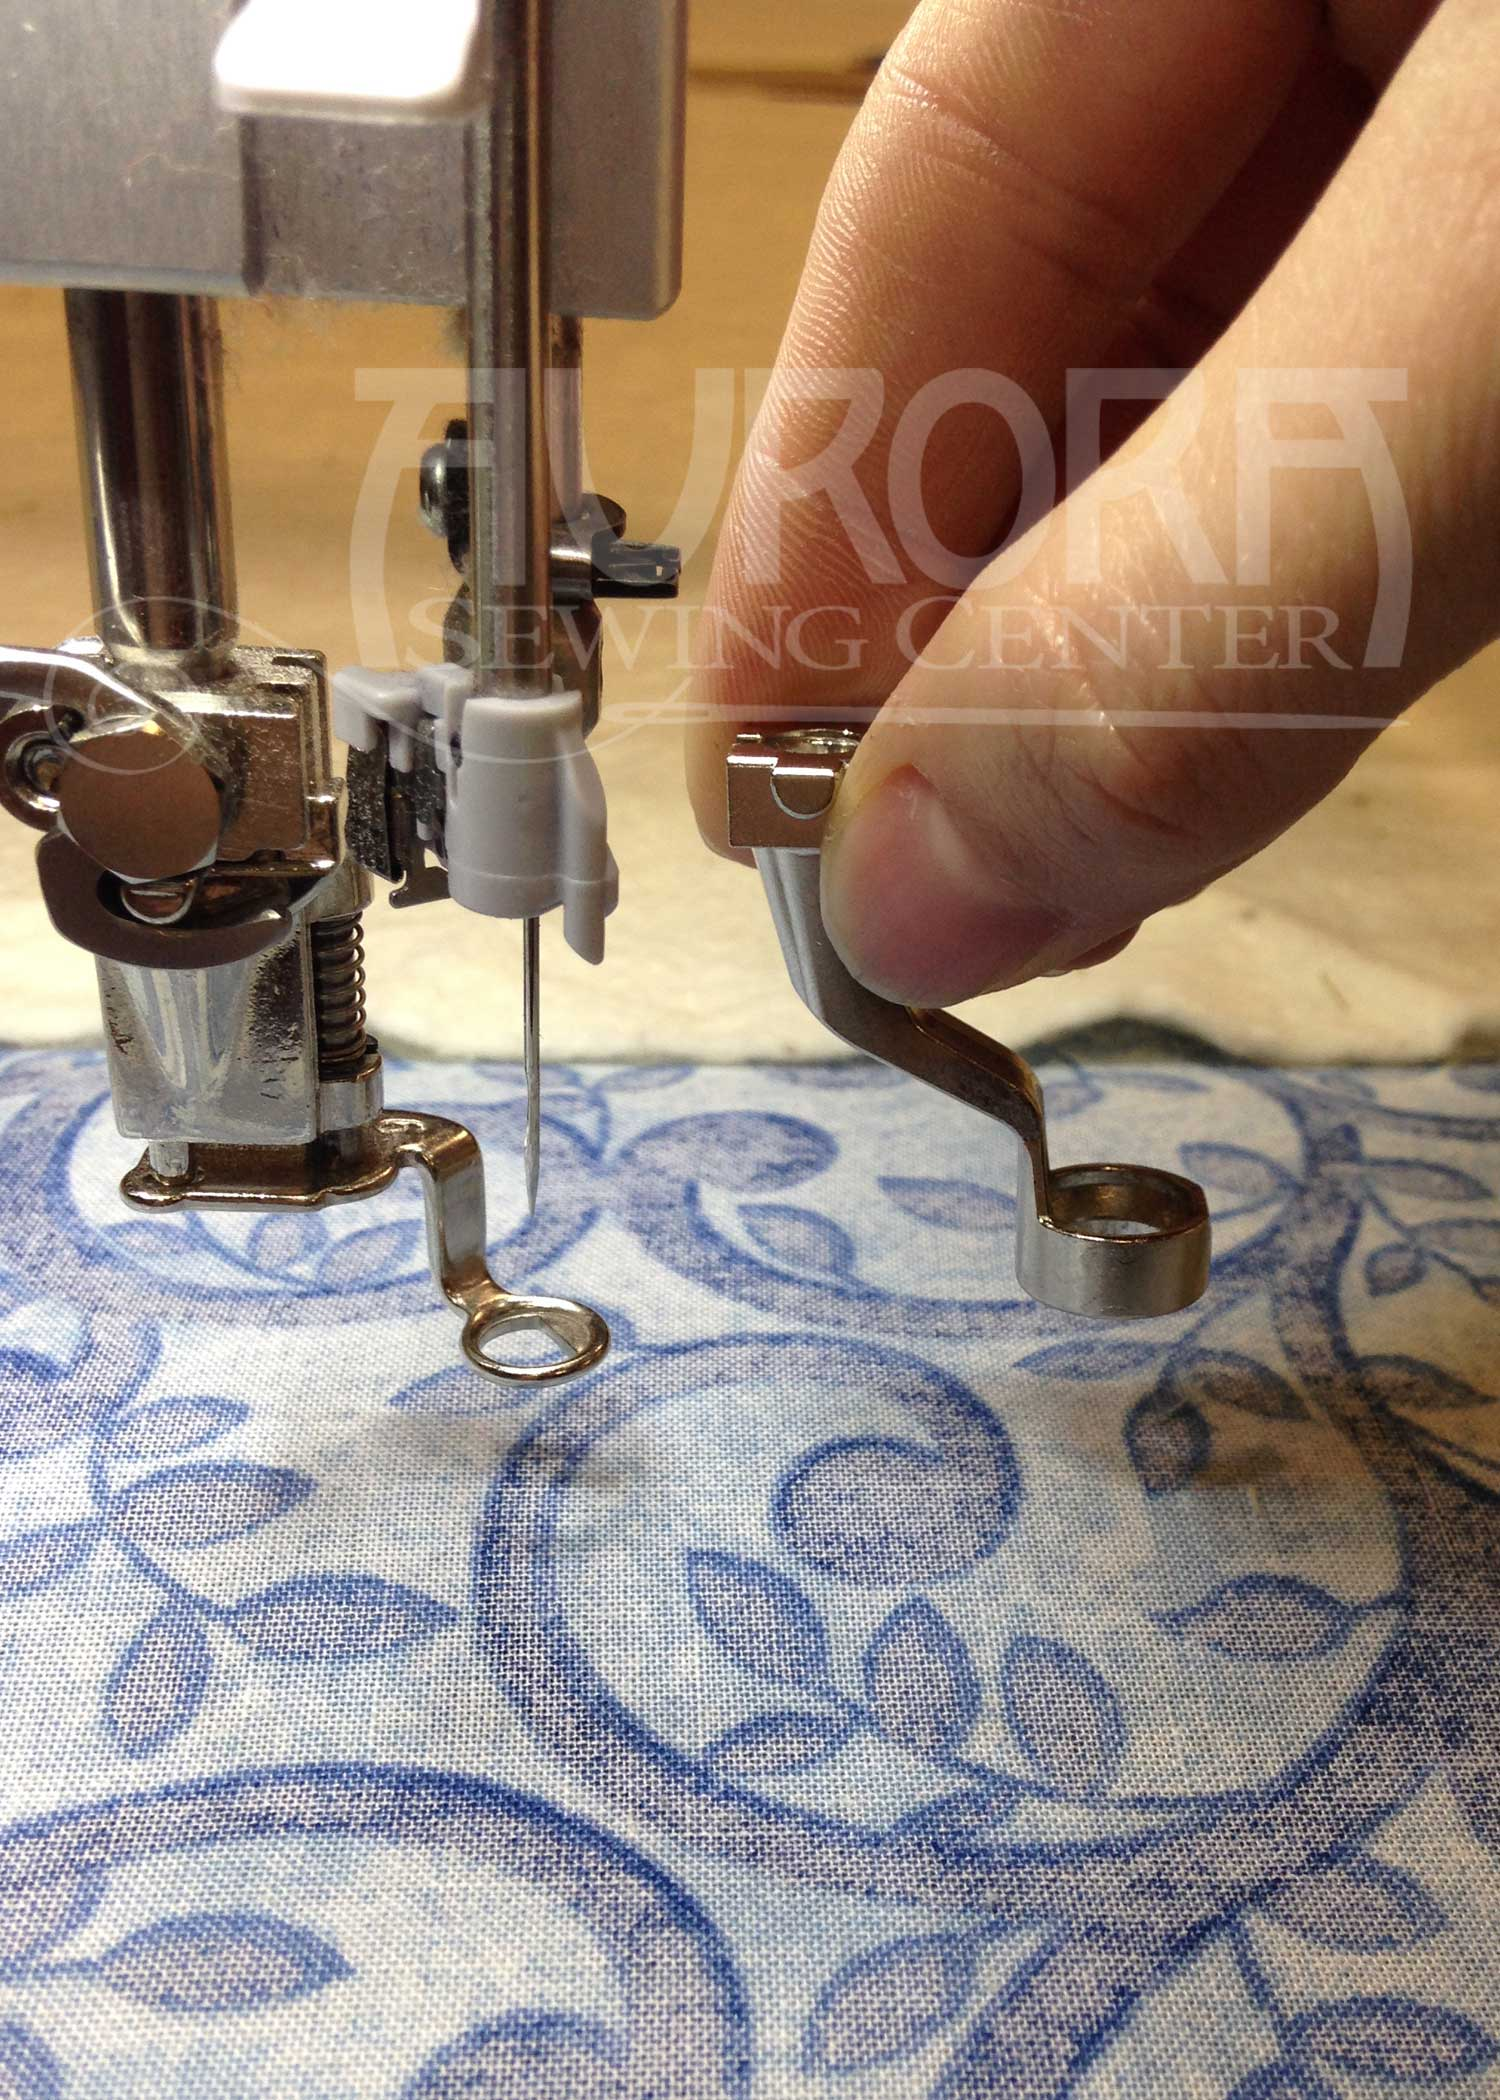 Coming Soon The Bernina Longarm Quilting Machines The Aurora